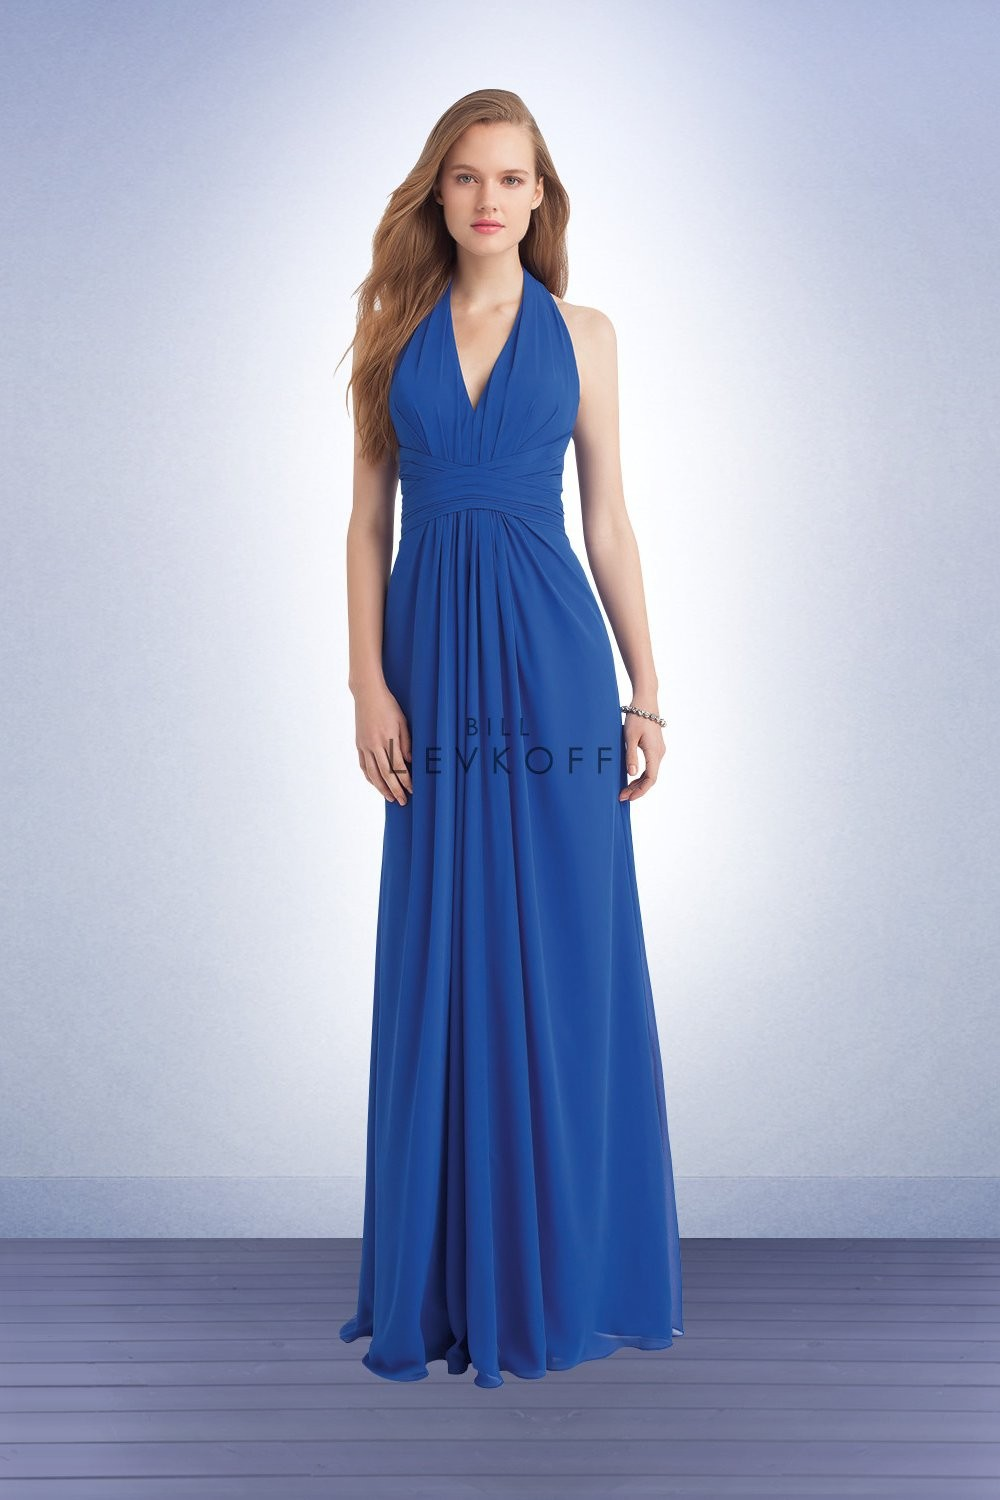 Halter Top Bridesmaid Dresses - Ocodea.com